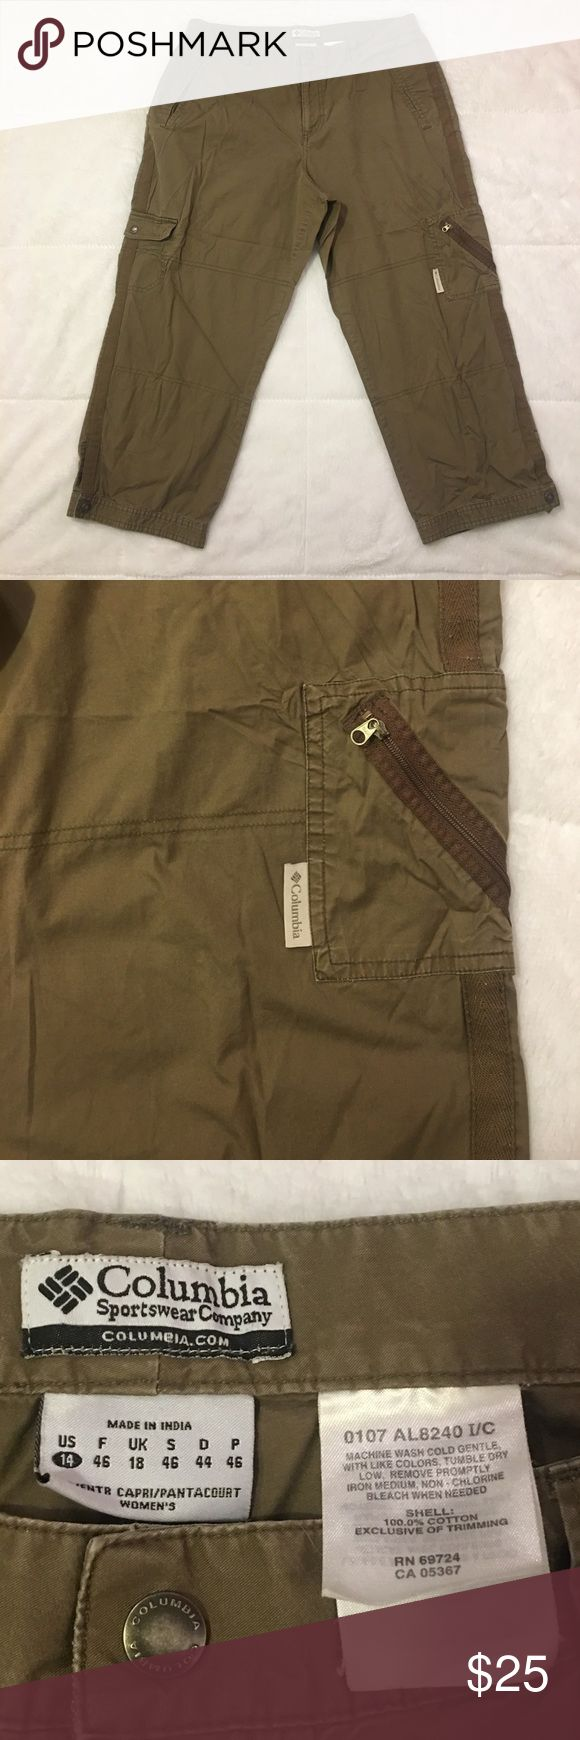 Columbia Sportswear Women's Outdoor Capri Pants Columbia Sportswear Outdoor Capri Pants. Women's Size 14. Great Spring & Summer Outdoors Pants. Lightly Worn. In Great Condition. Columbia Pants Capris